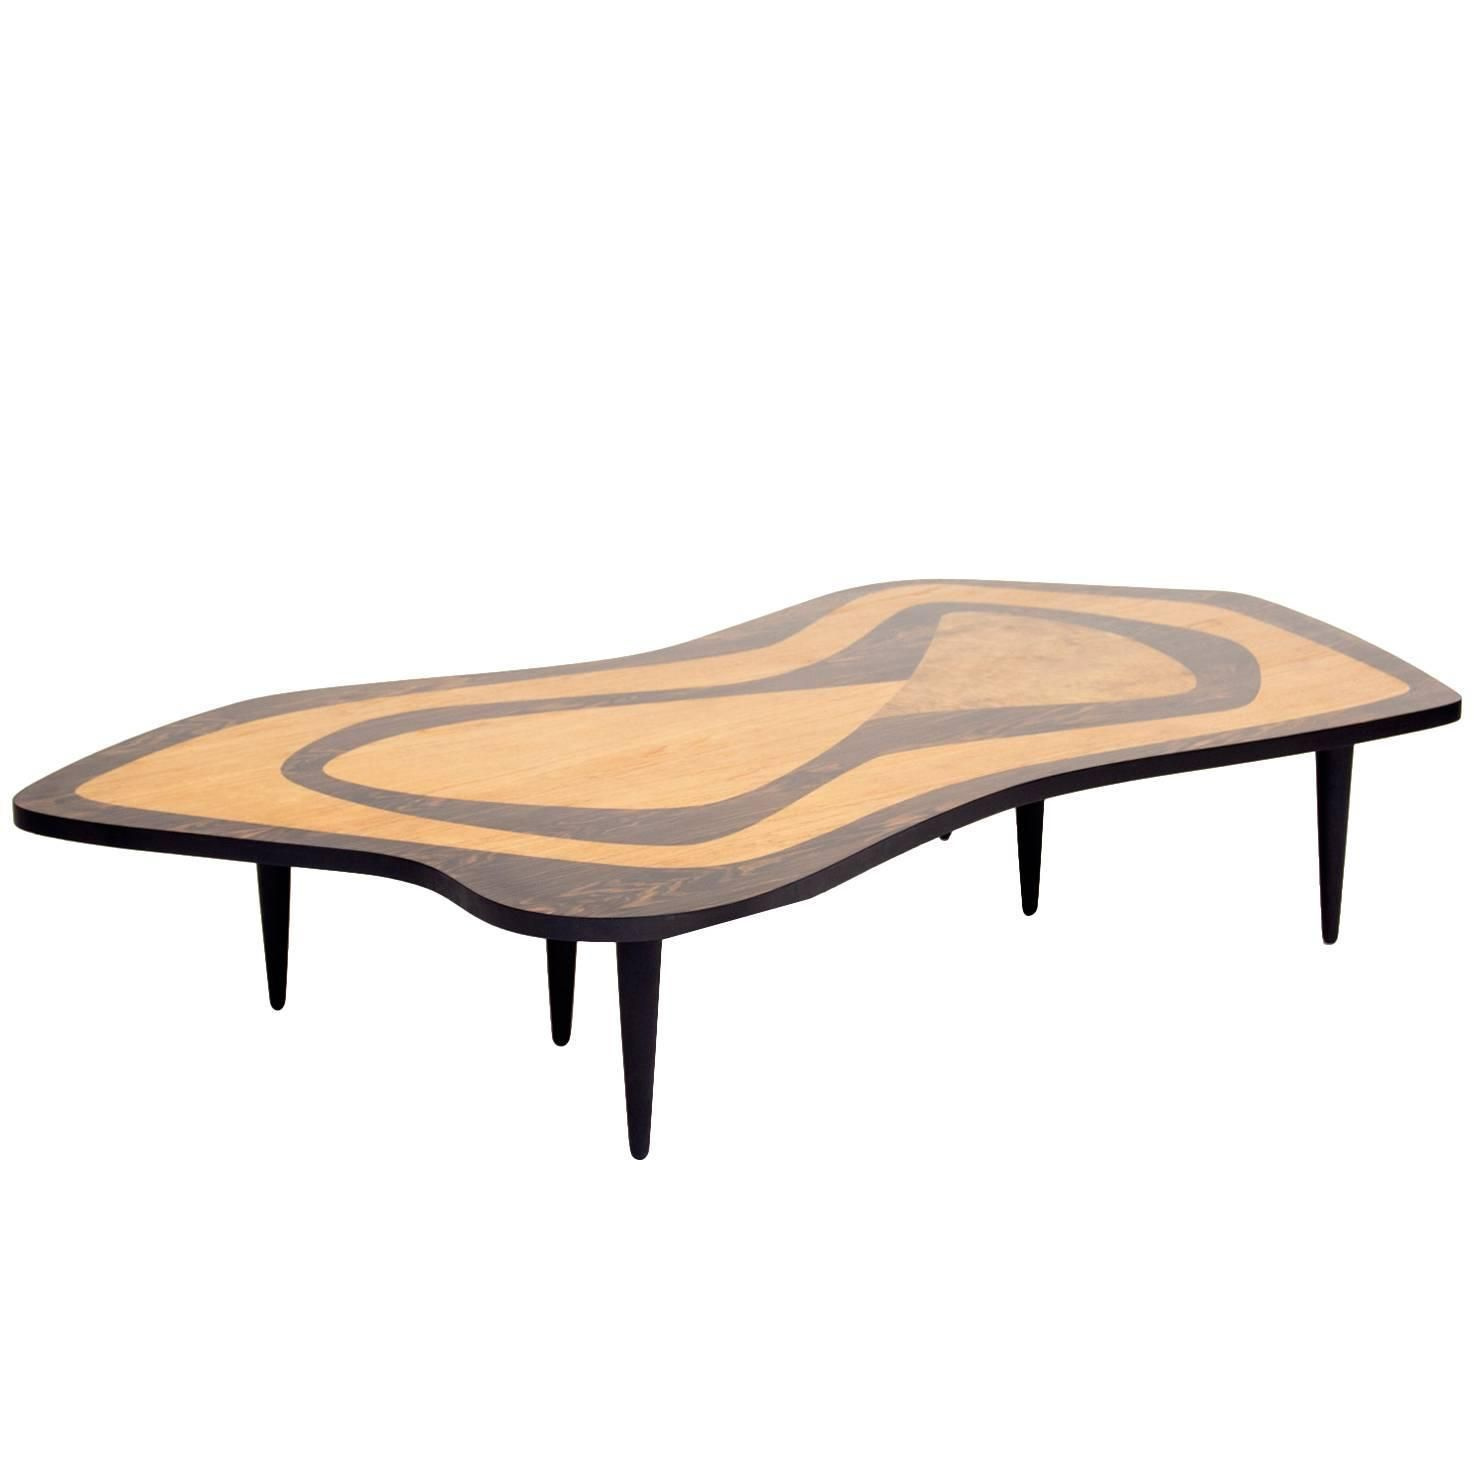 Oversized 1950s intarsia coffee table from a unique collection of antique and